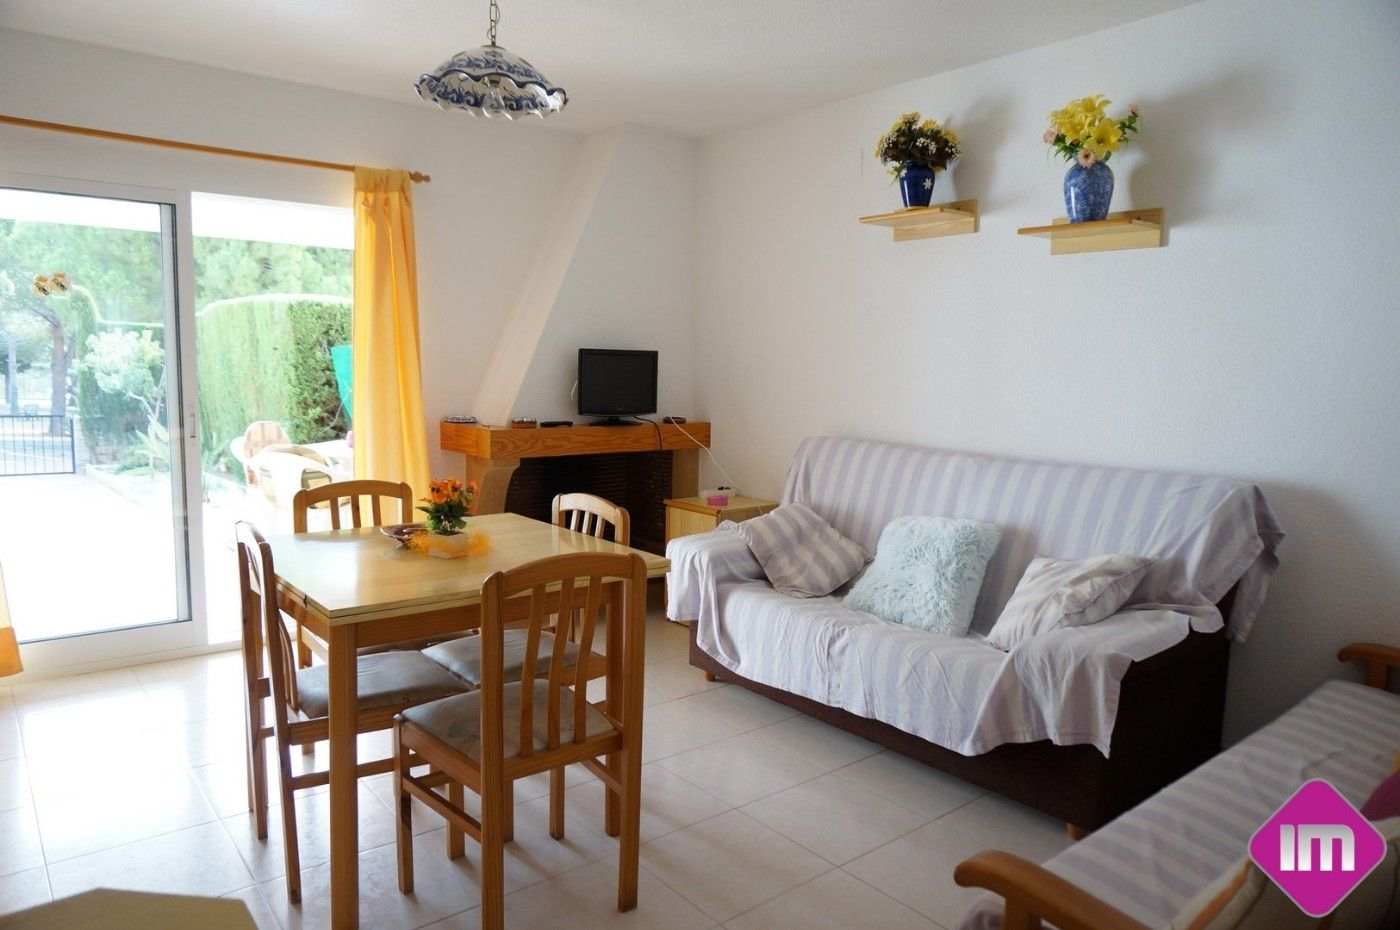 Semi detached house en Calle realenc, 1. Zona tranquila